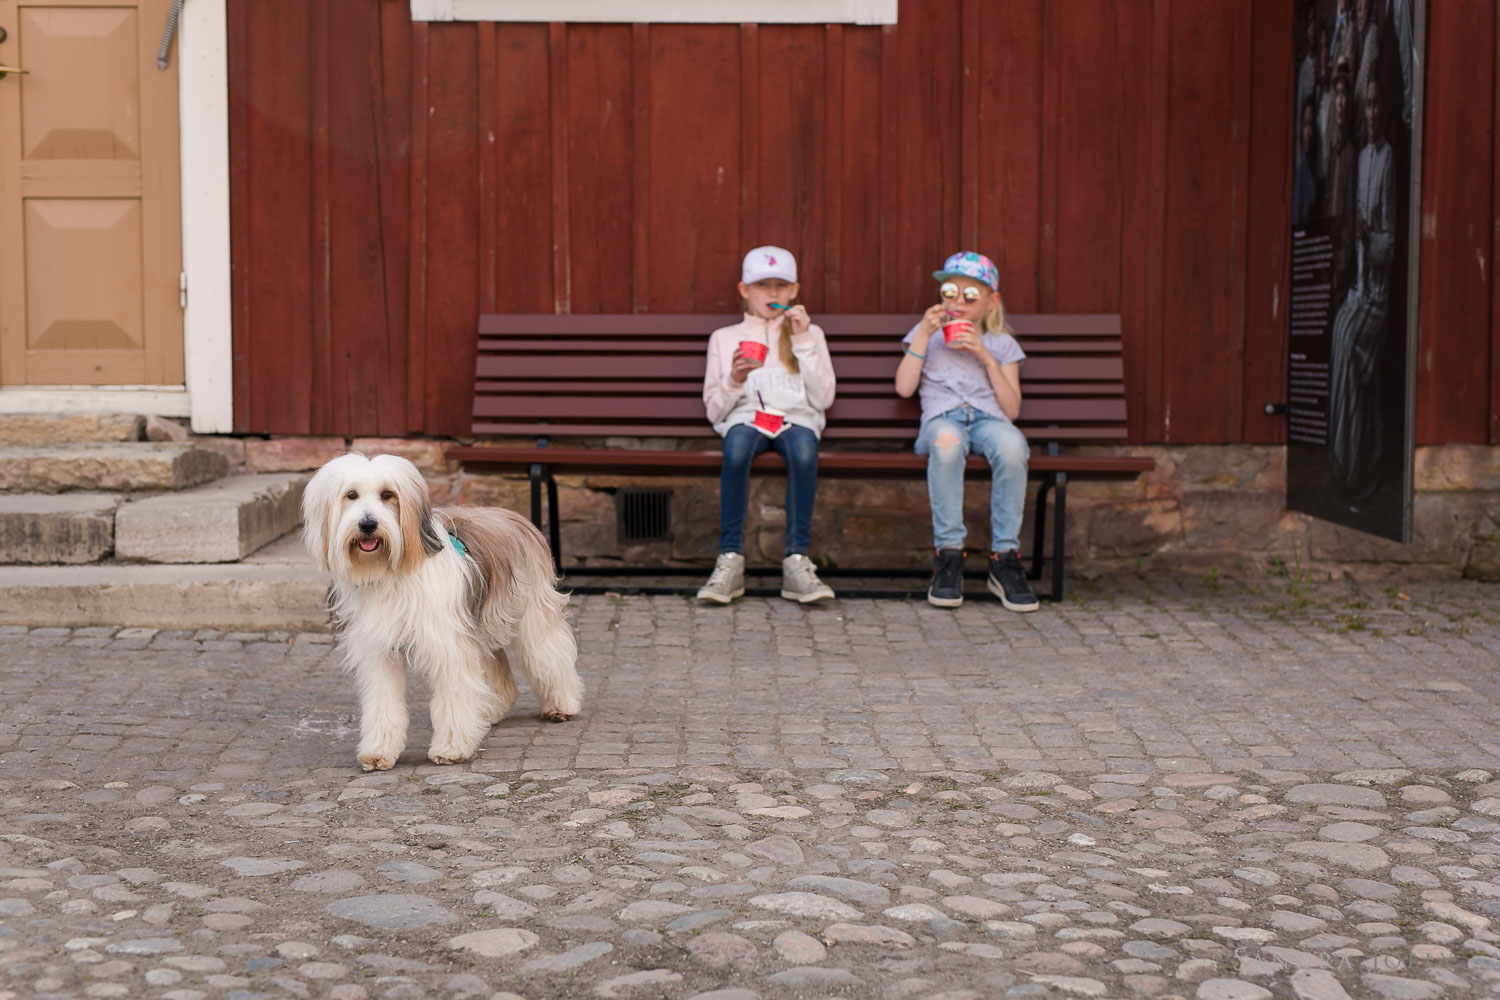 photo-of-dog-with-children-eating-ice-cream.jpg